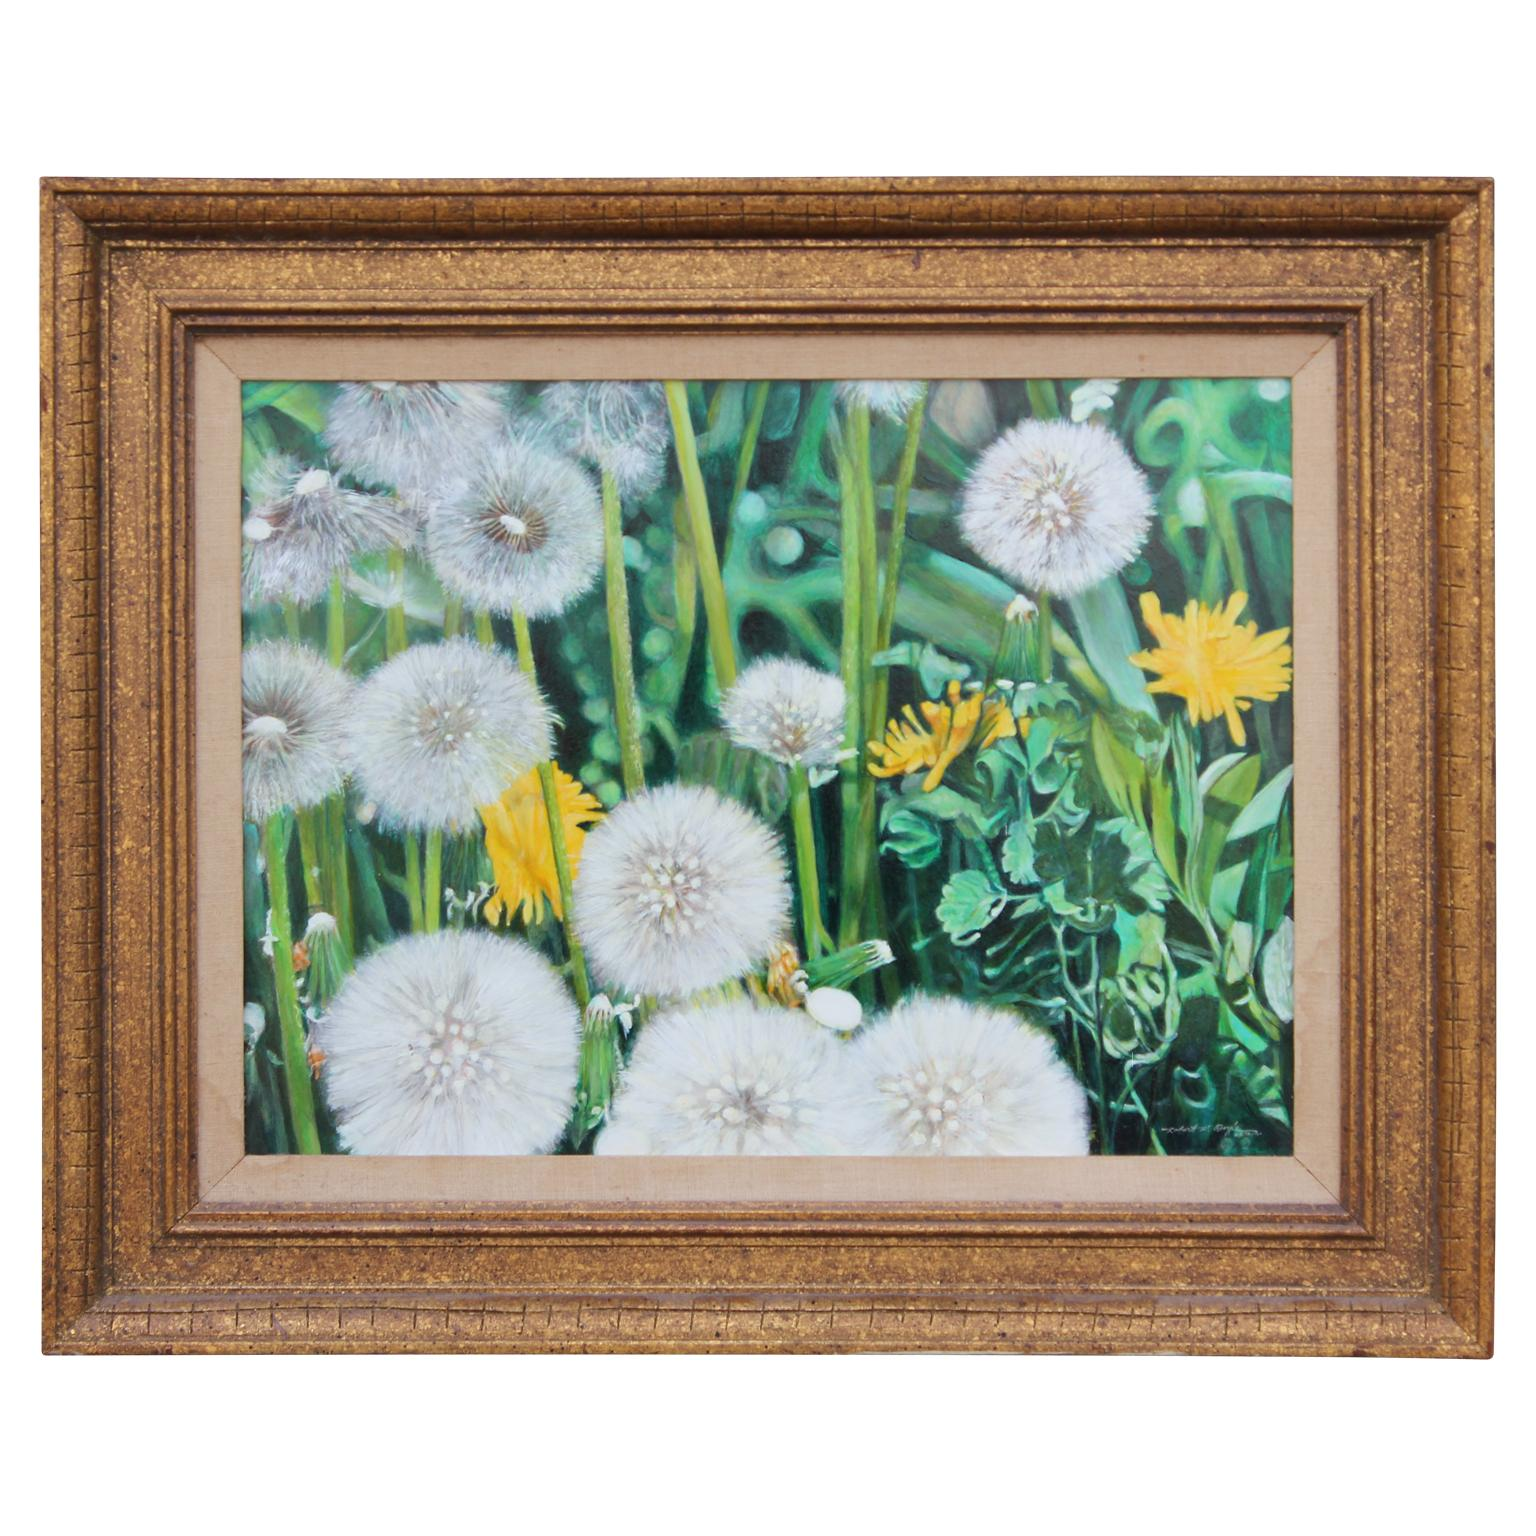 Close Up Painting with Dandelions